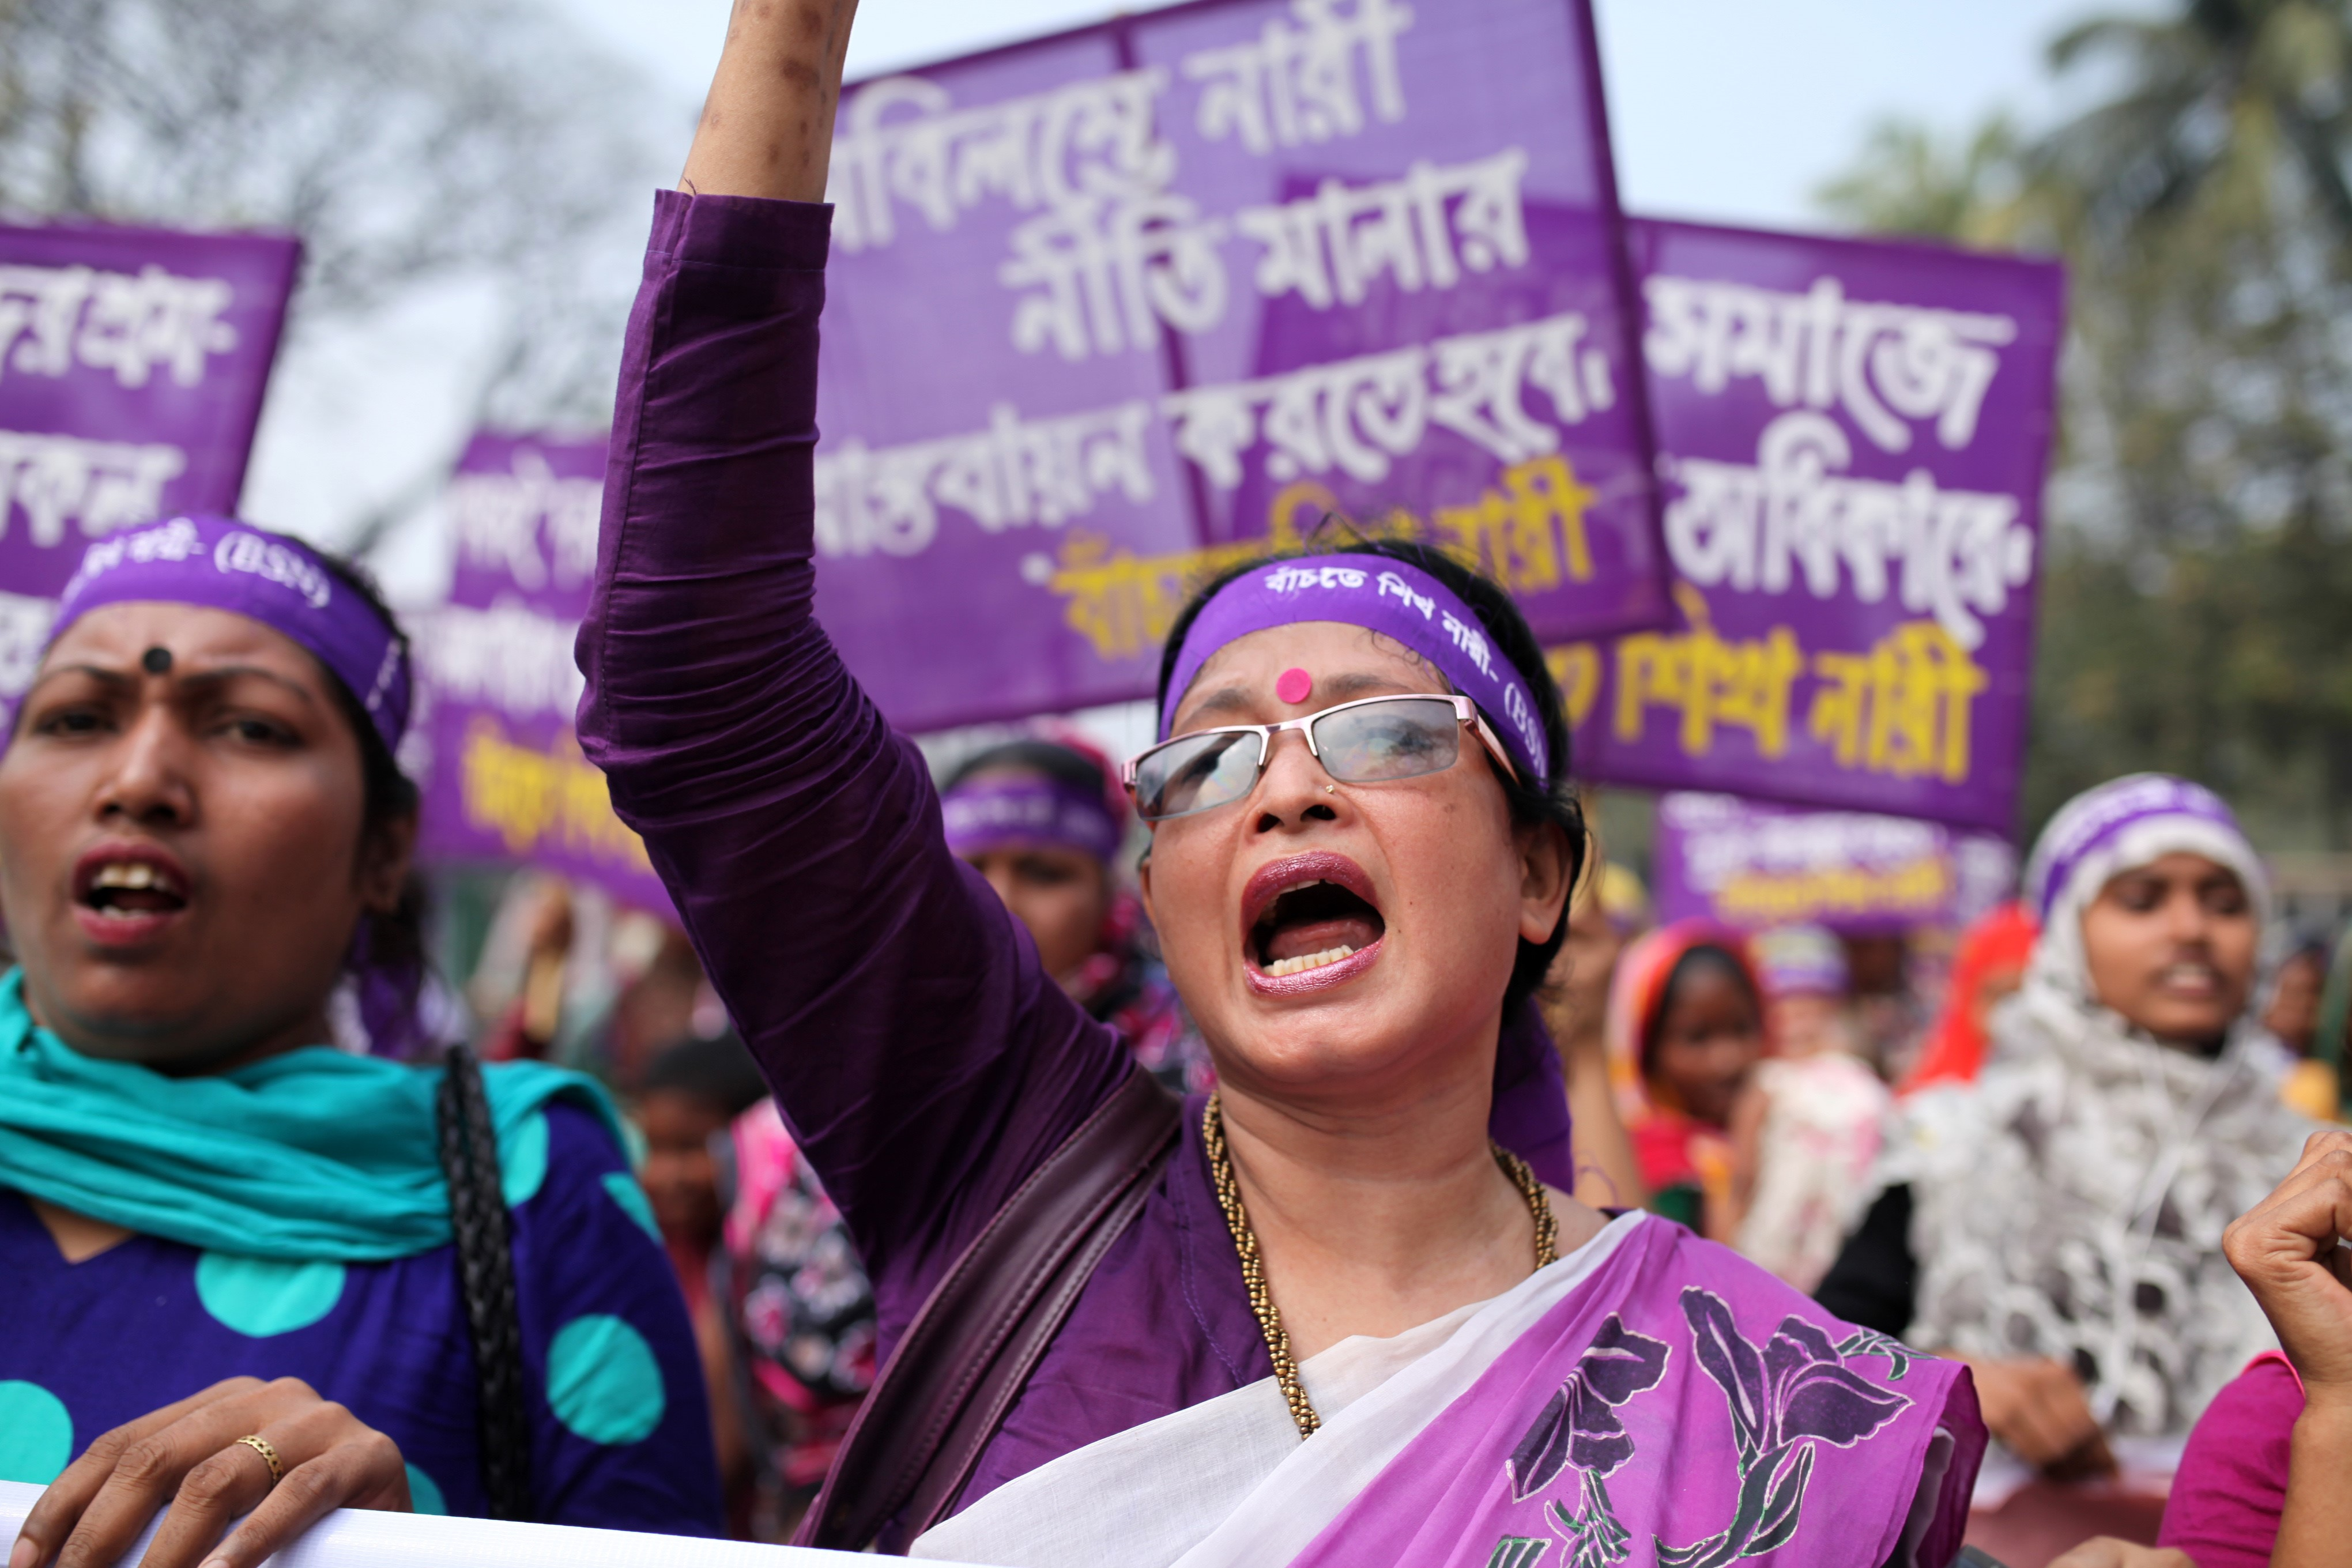 Bangladeshi activists and garment workers attend a rally in front of National Press Club during International Women's Day in Dhaka, Bangladesh on March 08, 2016.